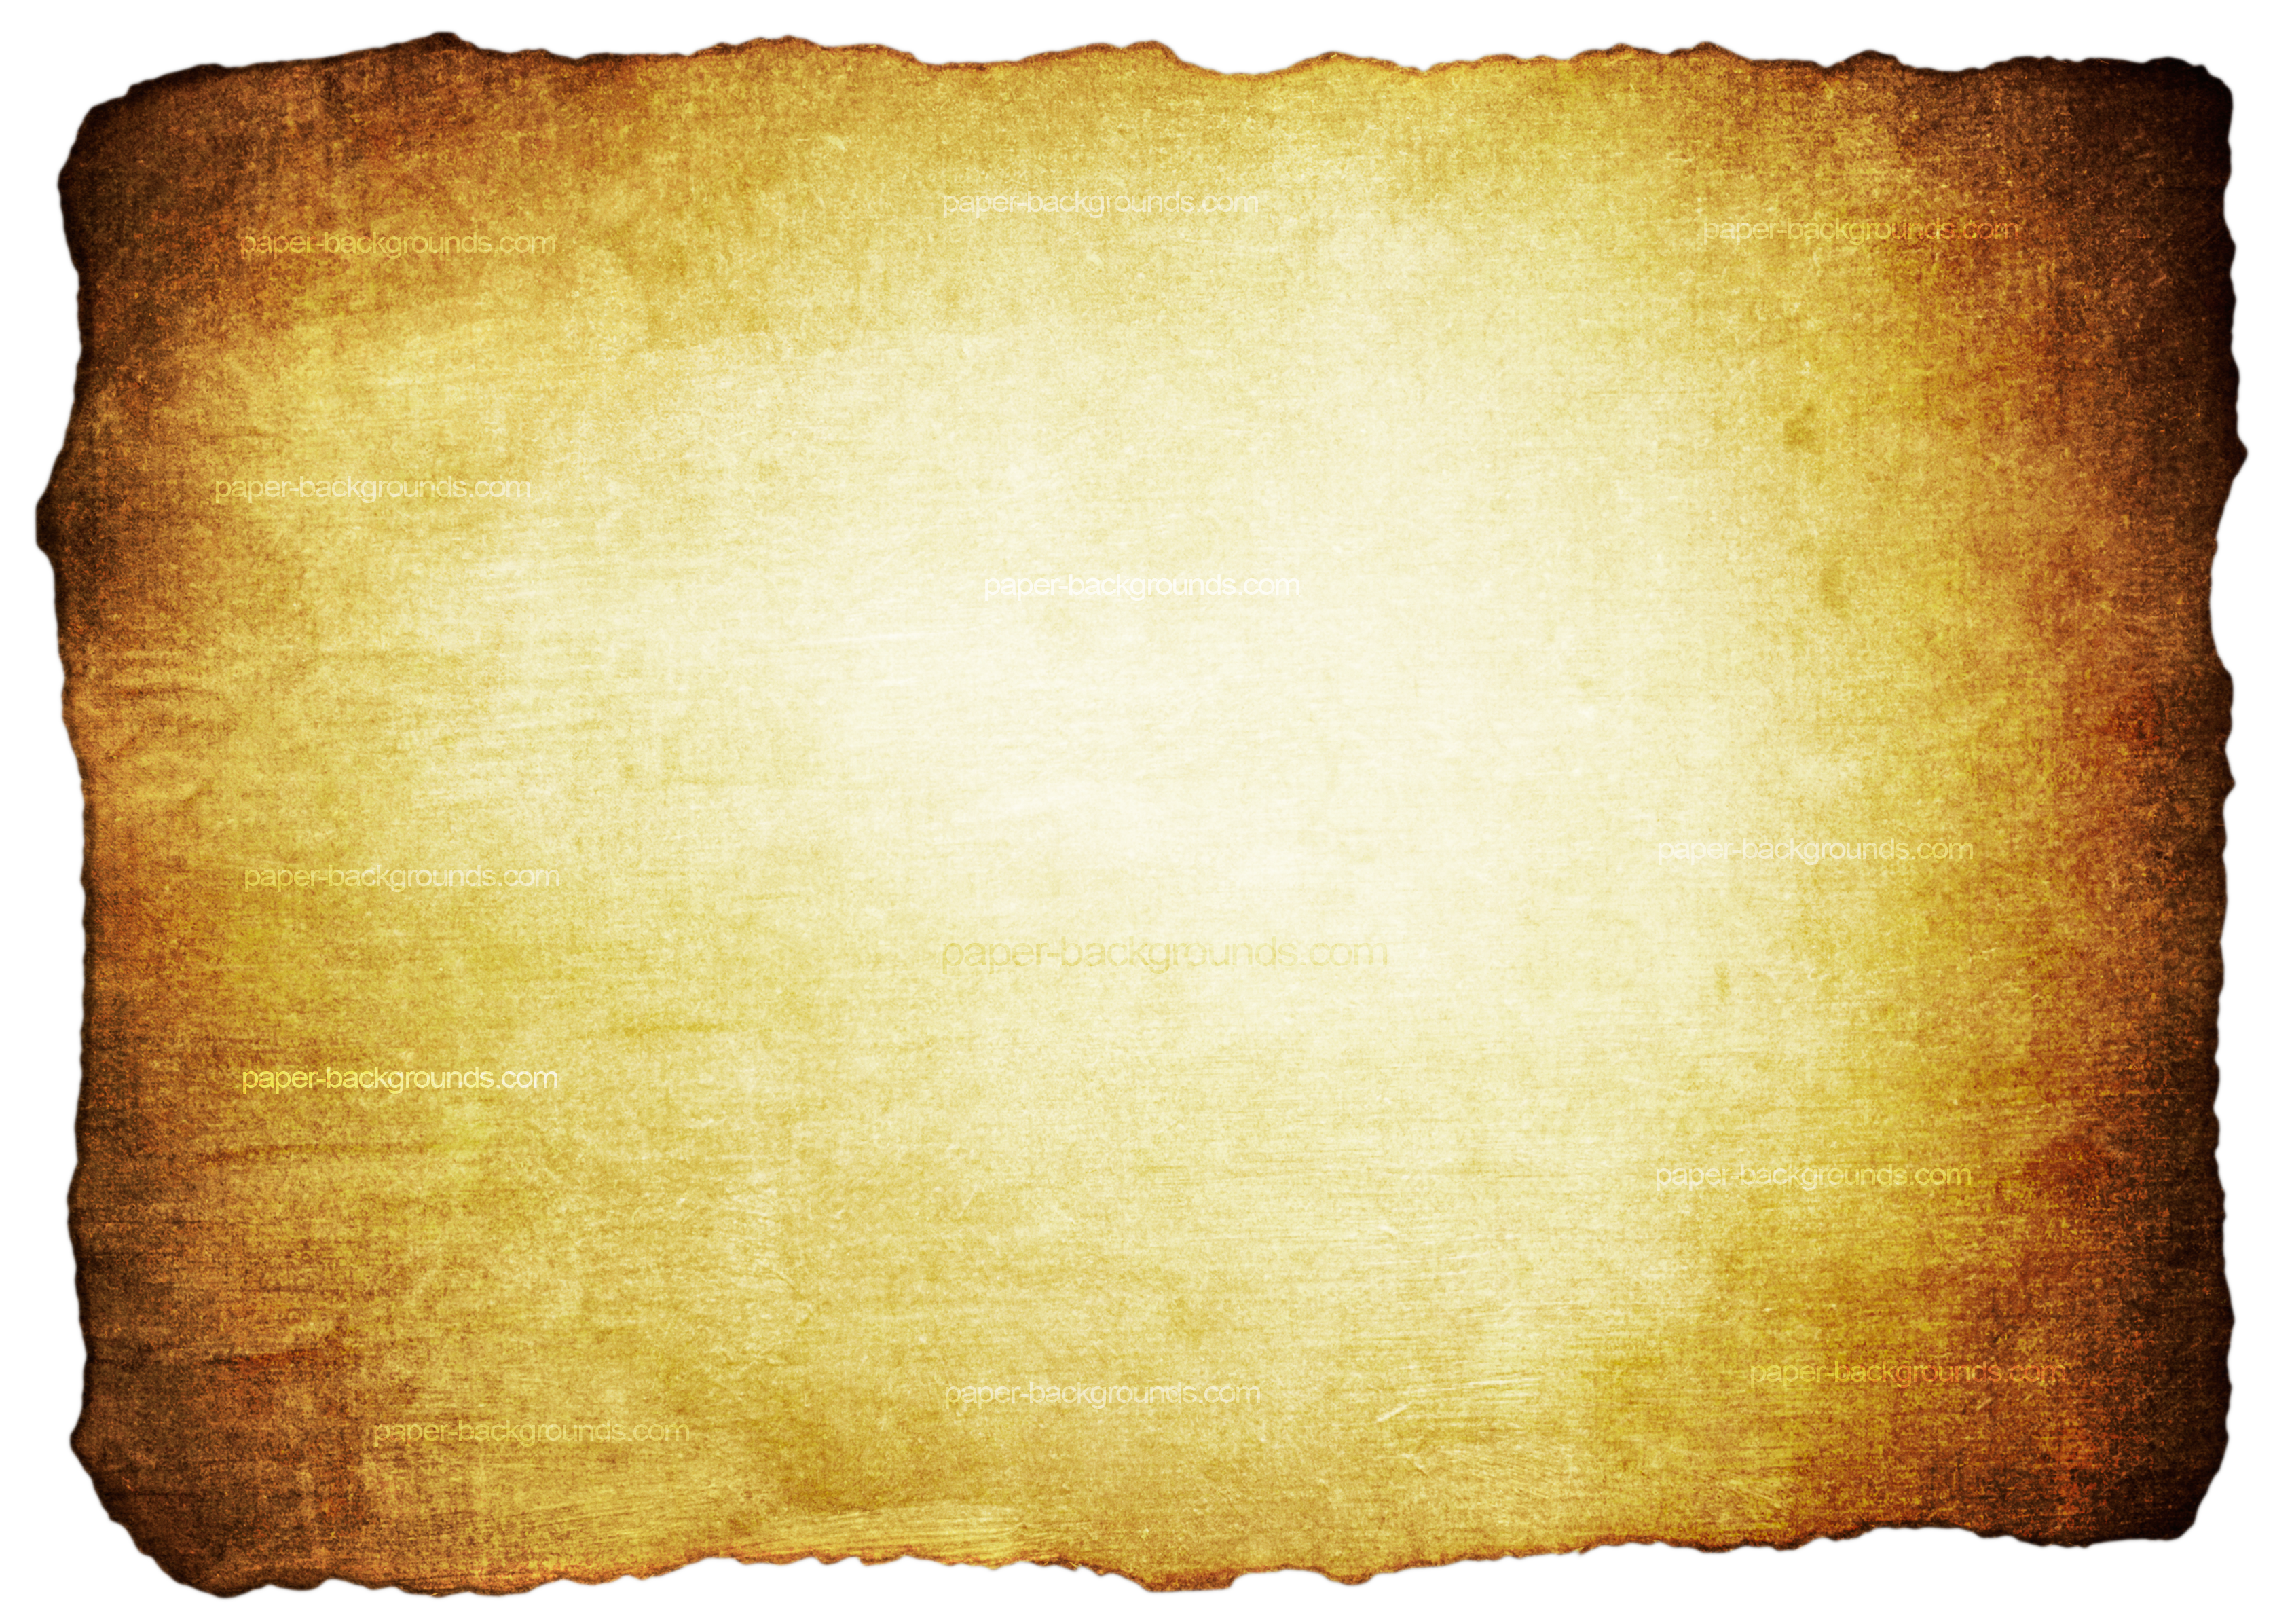 Burnt paper background png. Hd transparent images pluspng